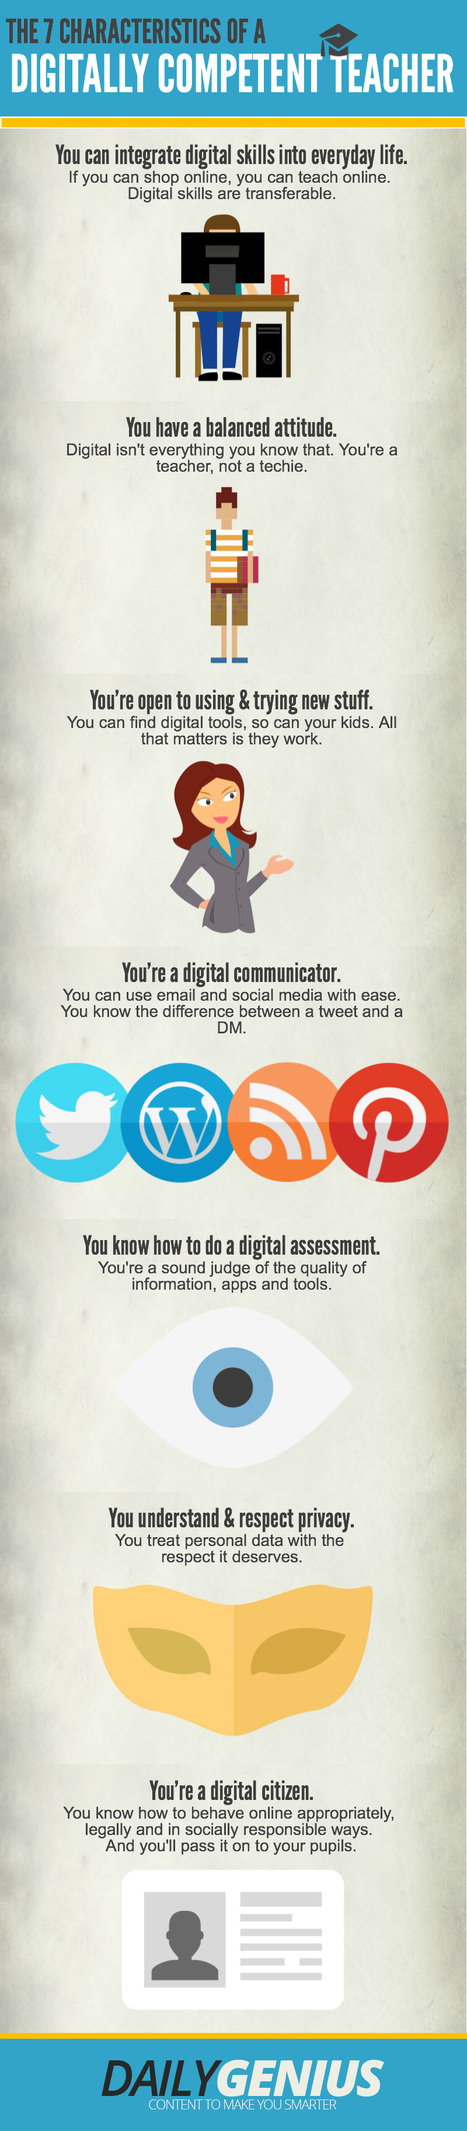 The Characteristics of a Digitally Competent Teacher Infographic - e-Learning Infographics | E-Learning and Online Teaching | Scoop.it